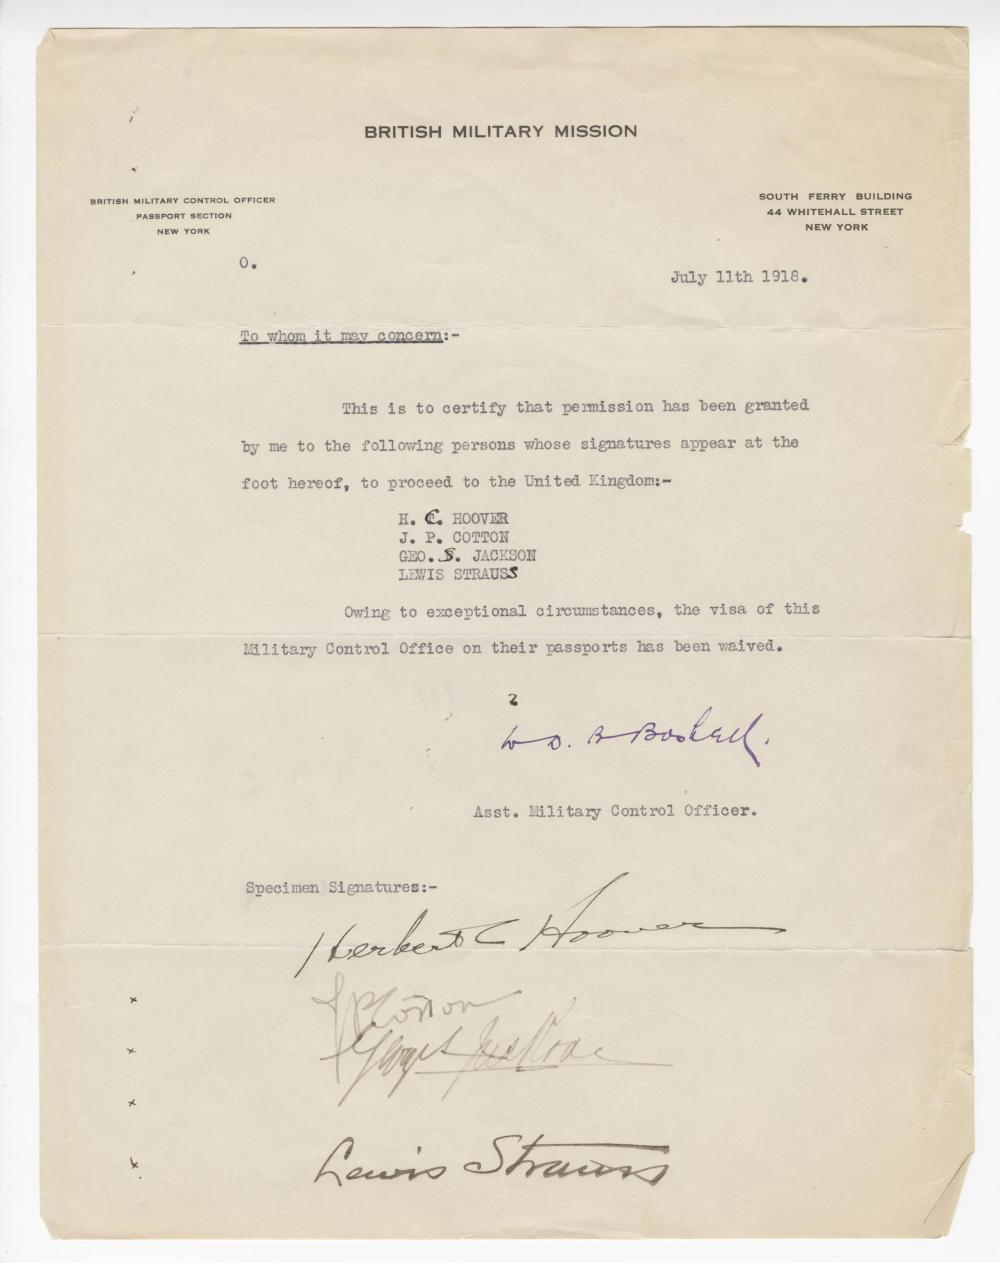 Herbert Hoover Signed Letter Giving Permission to go to the UK During Wartime